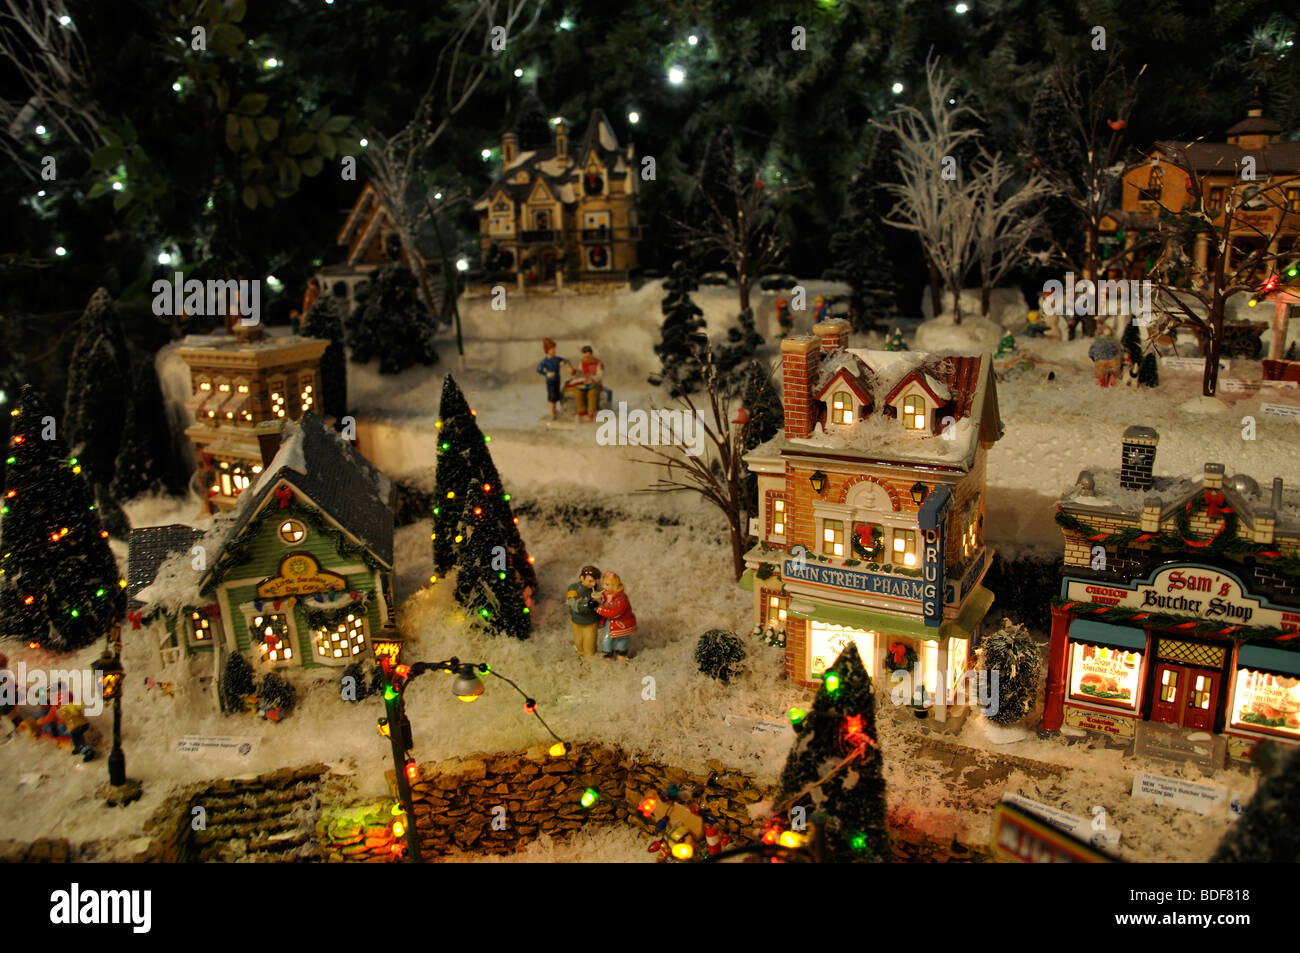 miniature christmas village toy houses decorations stock photo royalty free image 25536484 alamy. Black Bedroom Furniture Sets. Home Design Ideas